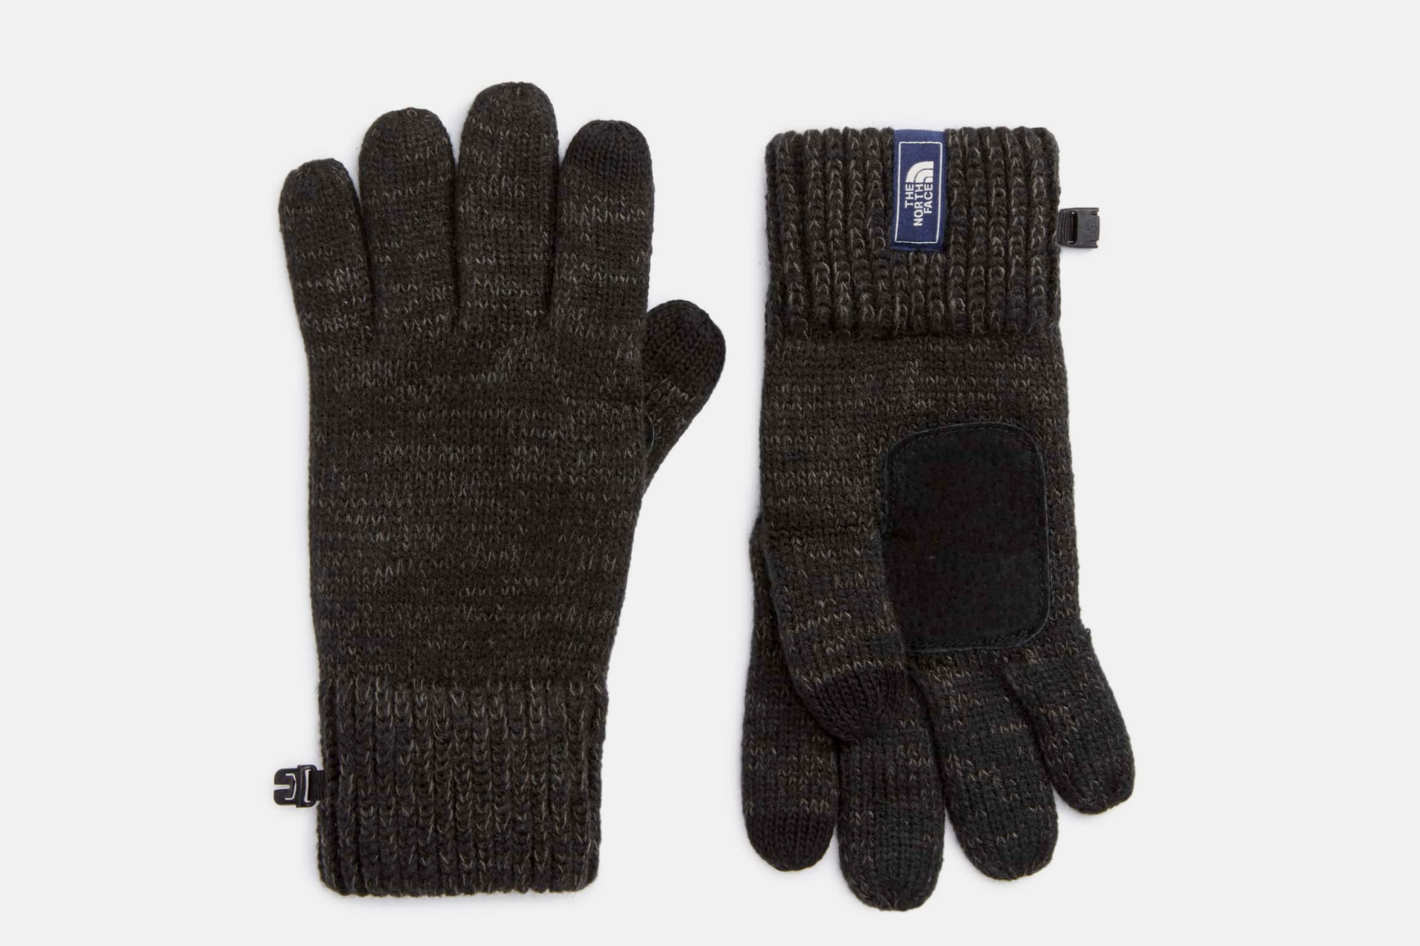 North Face Knit Tech Gloves